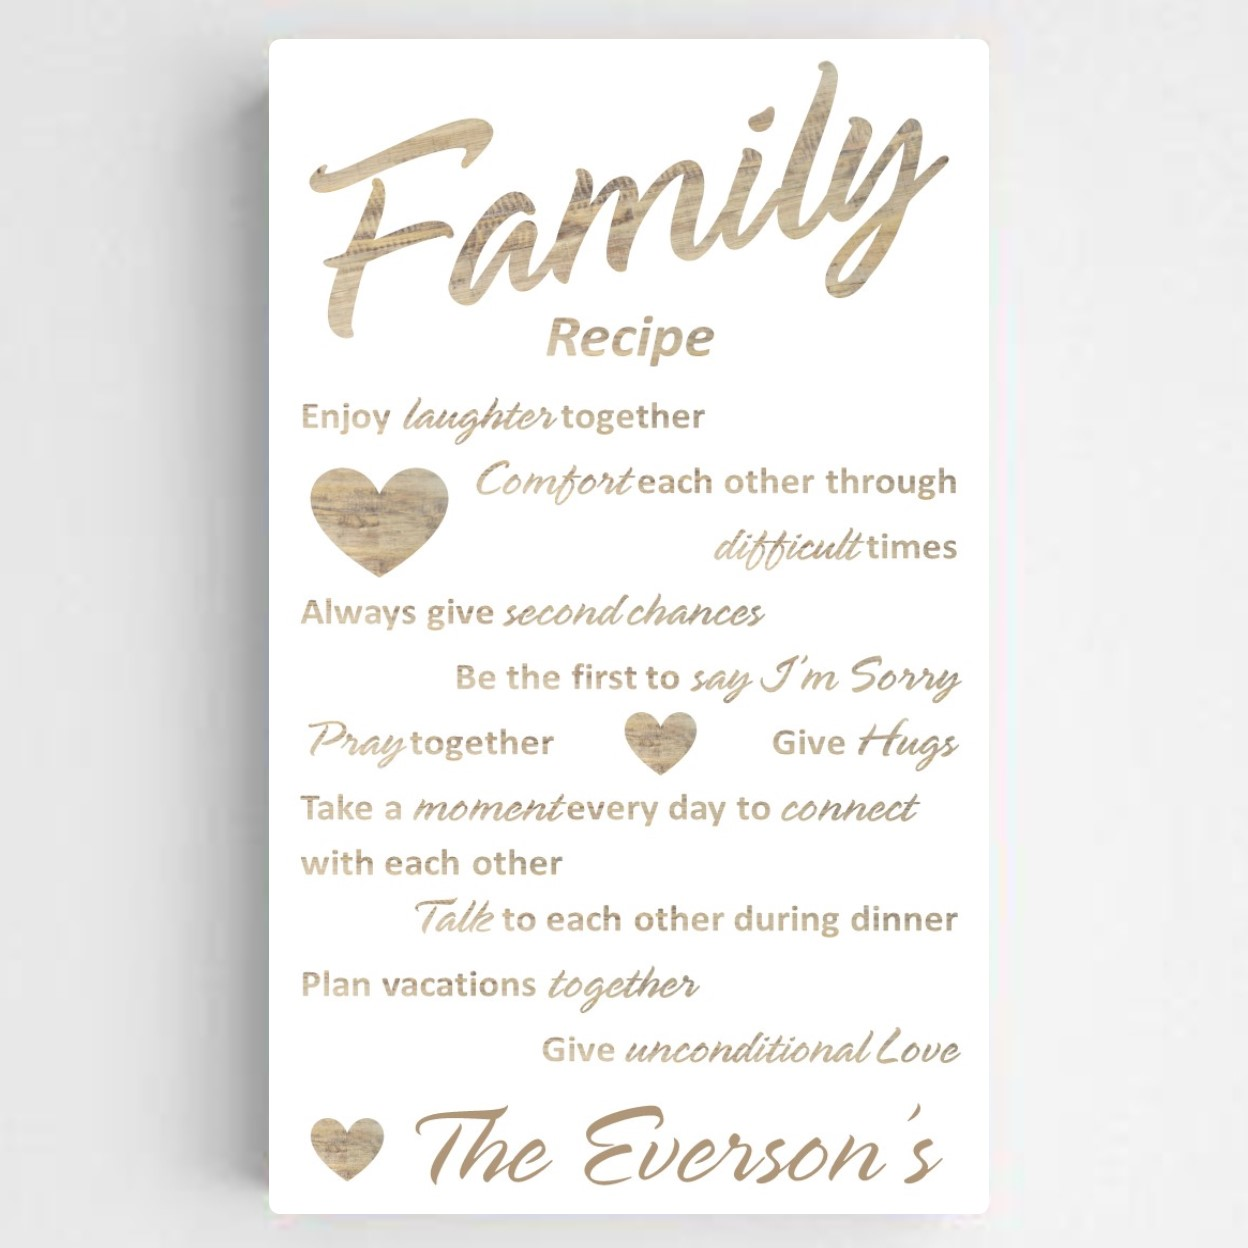 Wedding Anniversary Gift Ideas For Your Parents : ... wedding anniversary gifts and party ideas for your parents that they